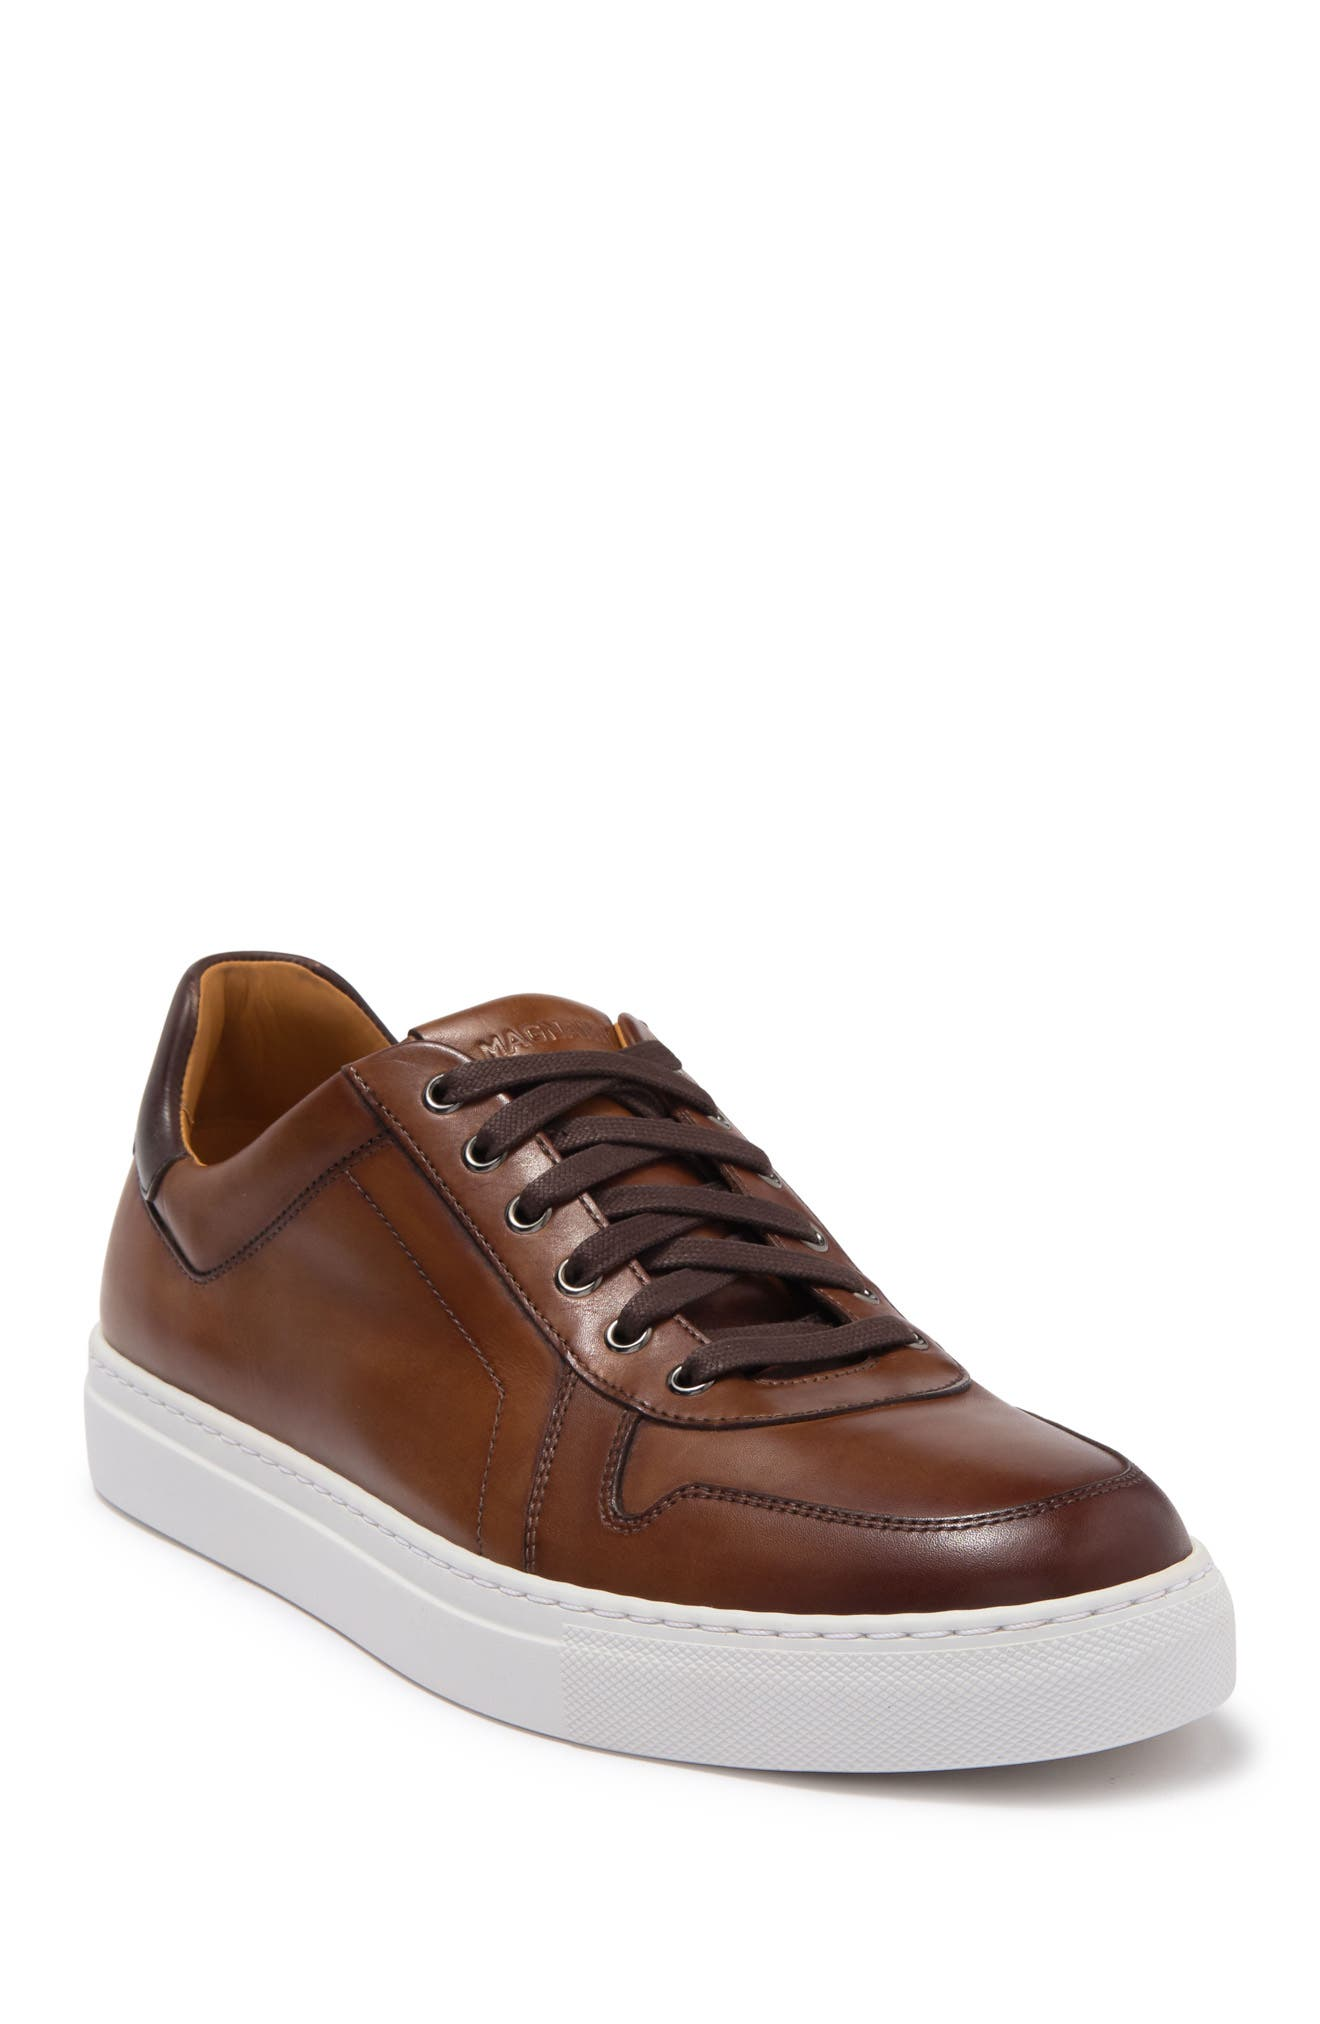 Image of Magnanni Bobbie Leather Low Top Sneaker